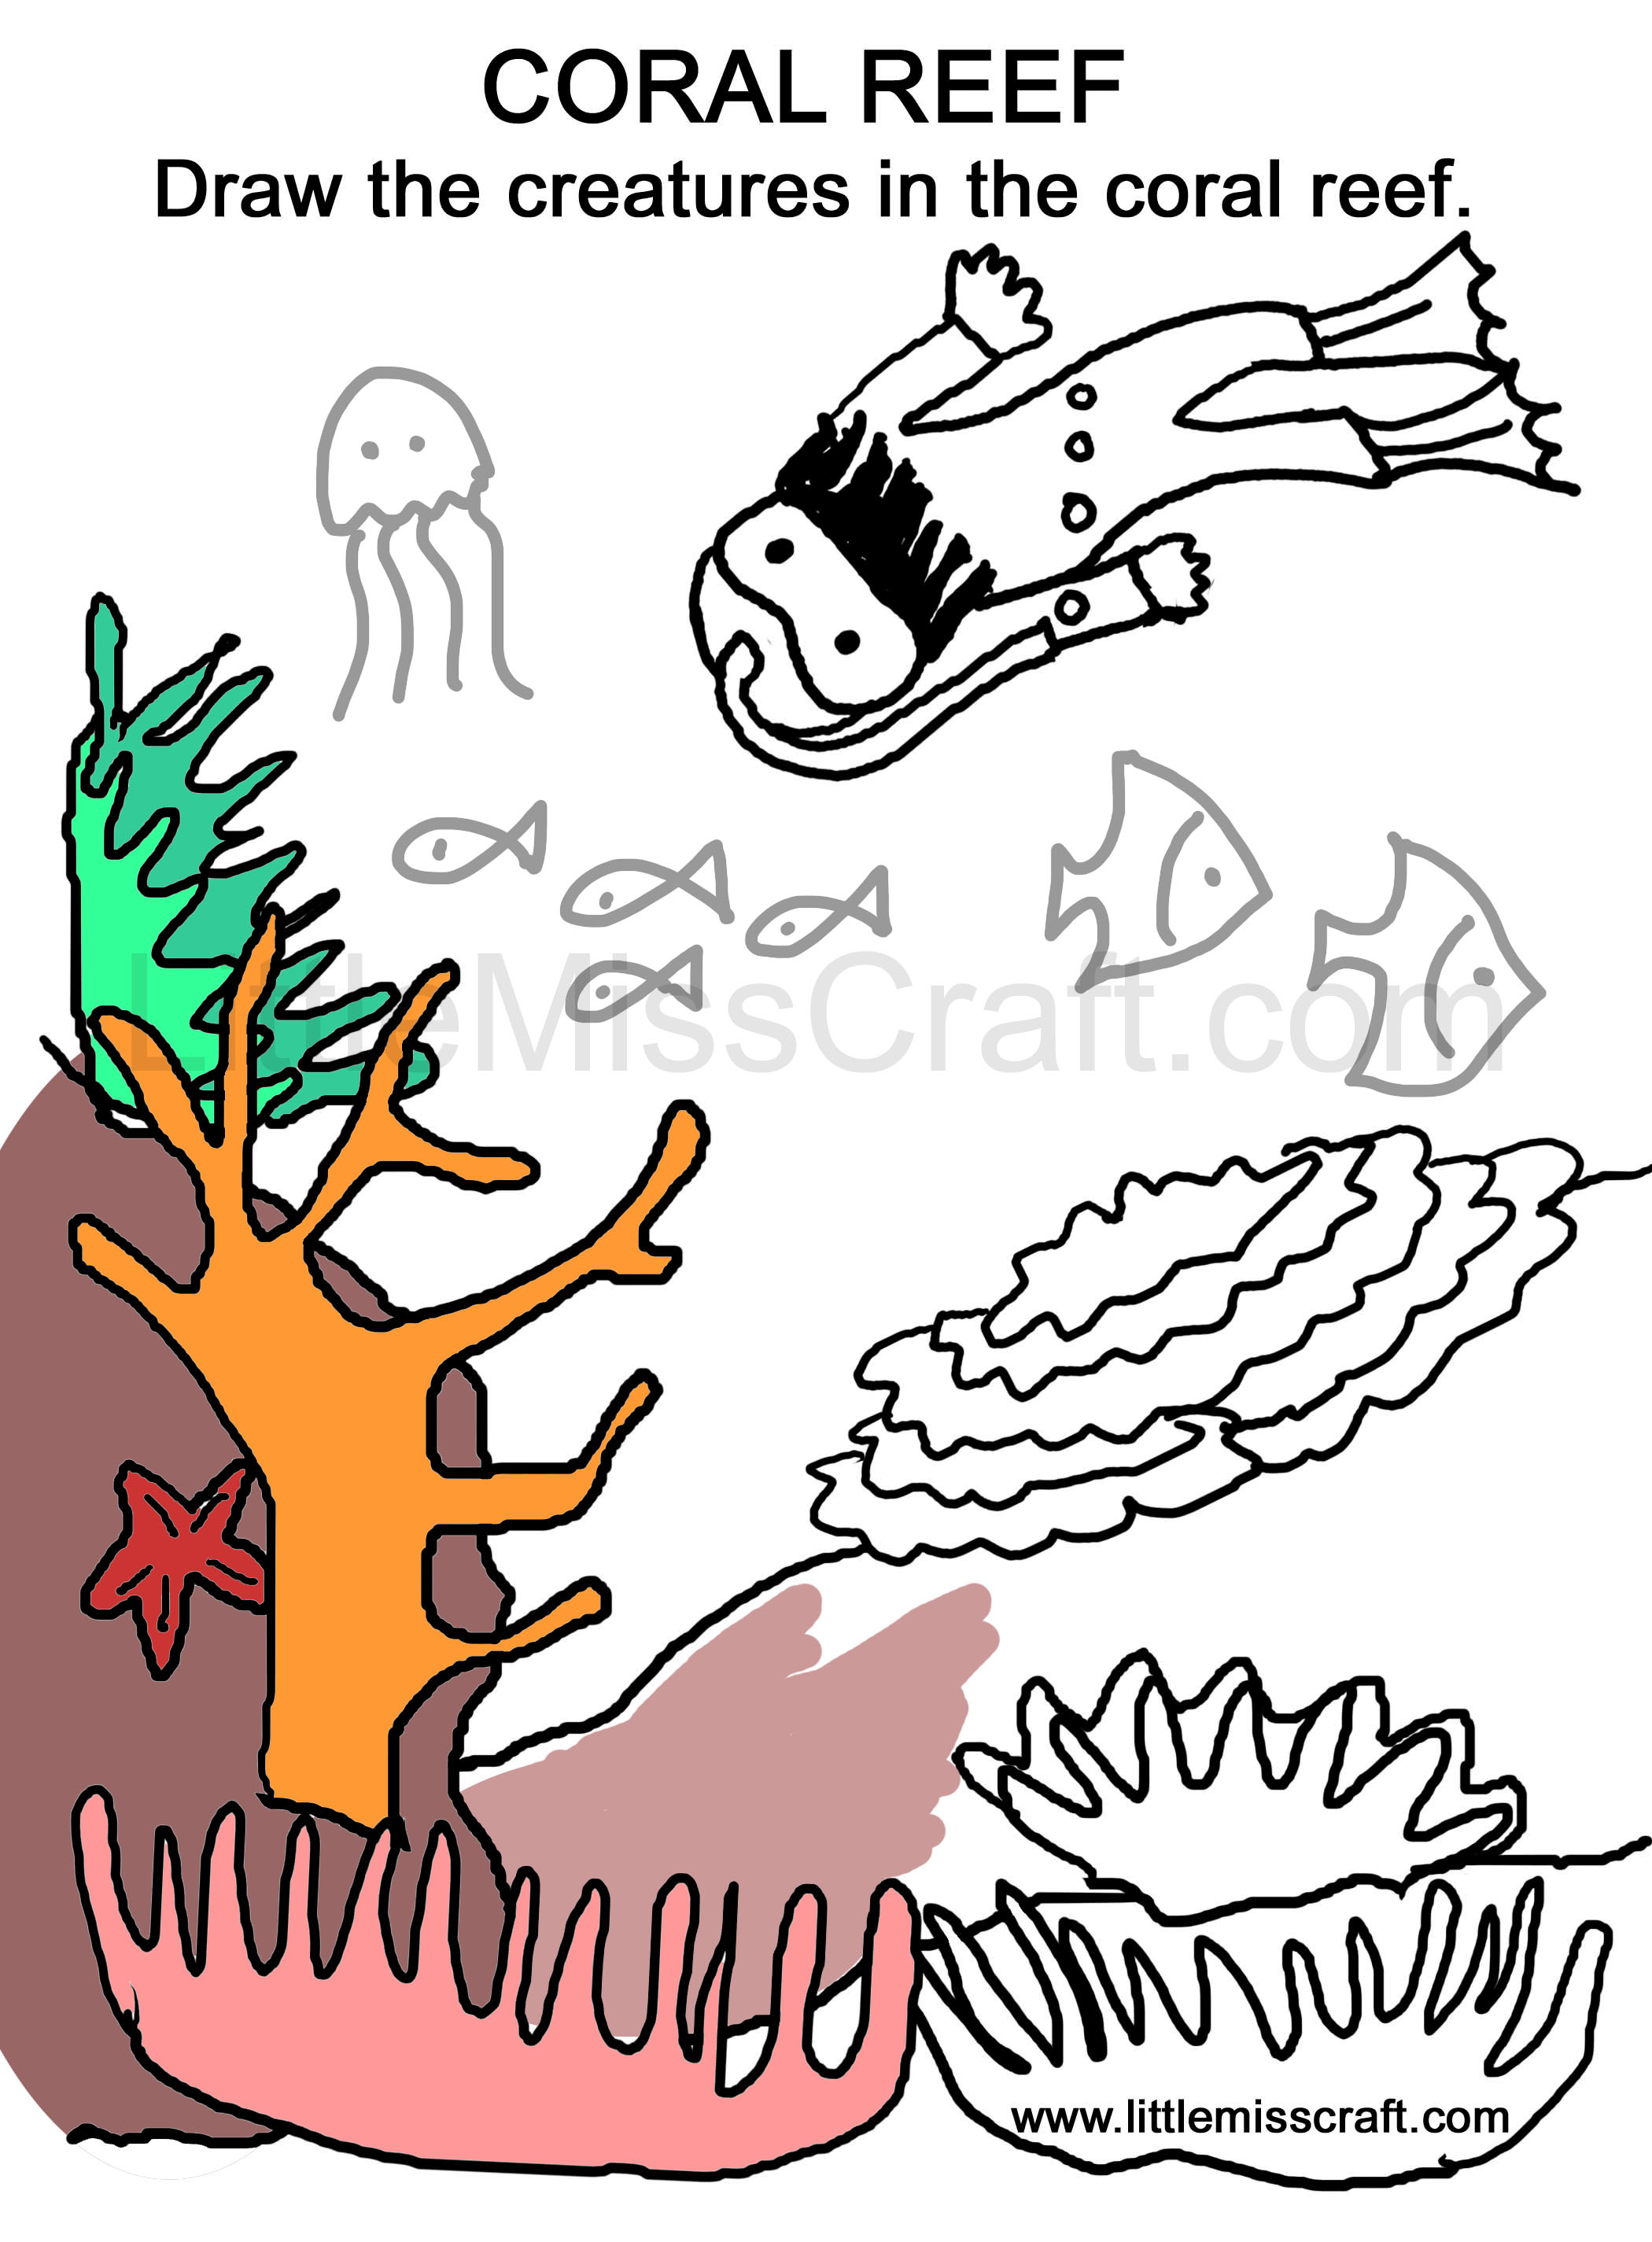 Diver Coral Reef Doodle Coloring Page